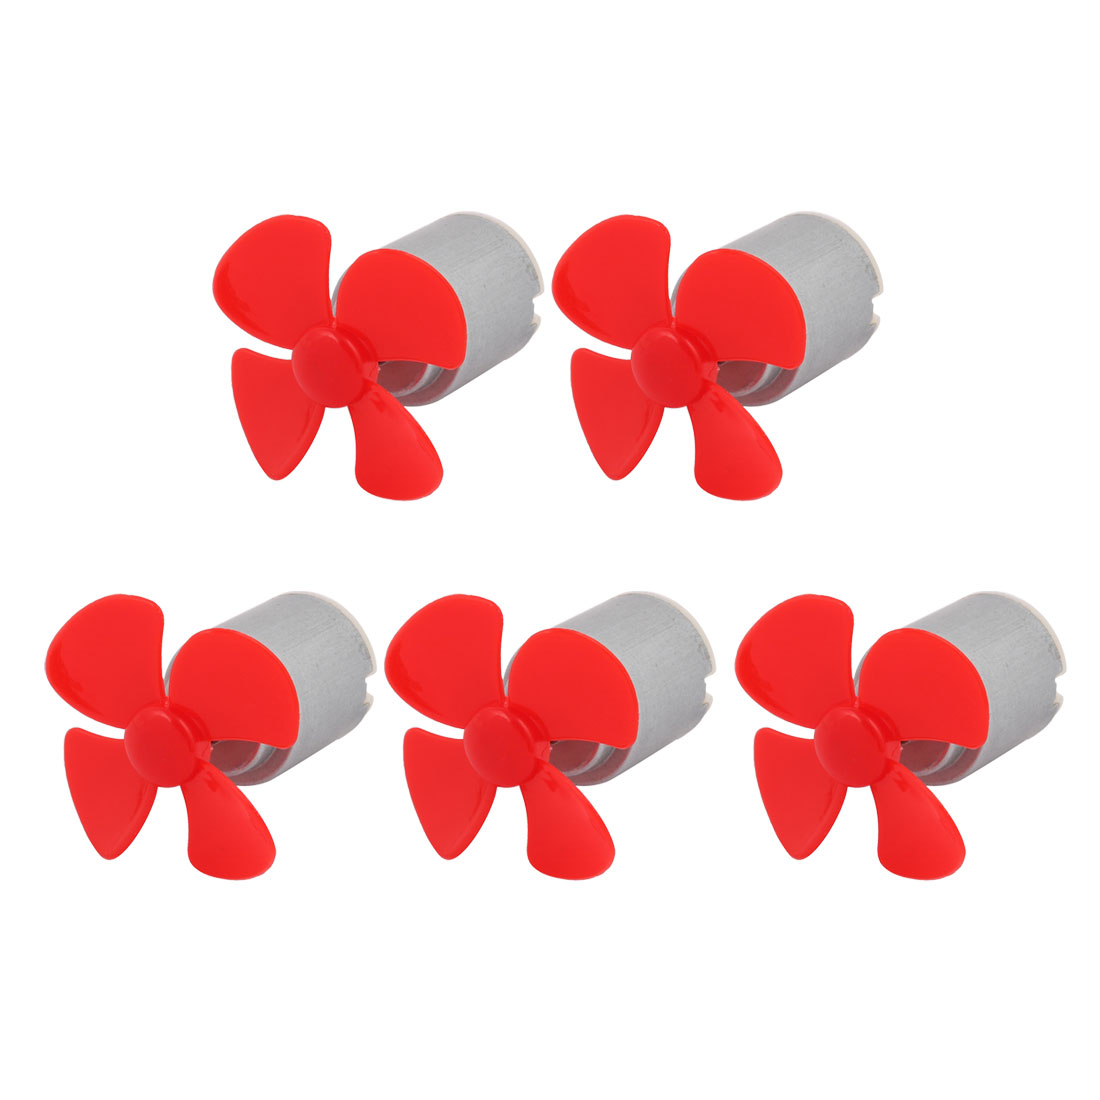 5pcs DC 3V 0.13A 14000RPM Strong Force Motor 4 Vanes 40mm Red Propeller for RC Aircraft